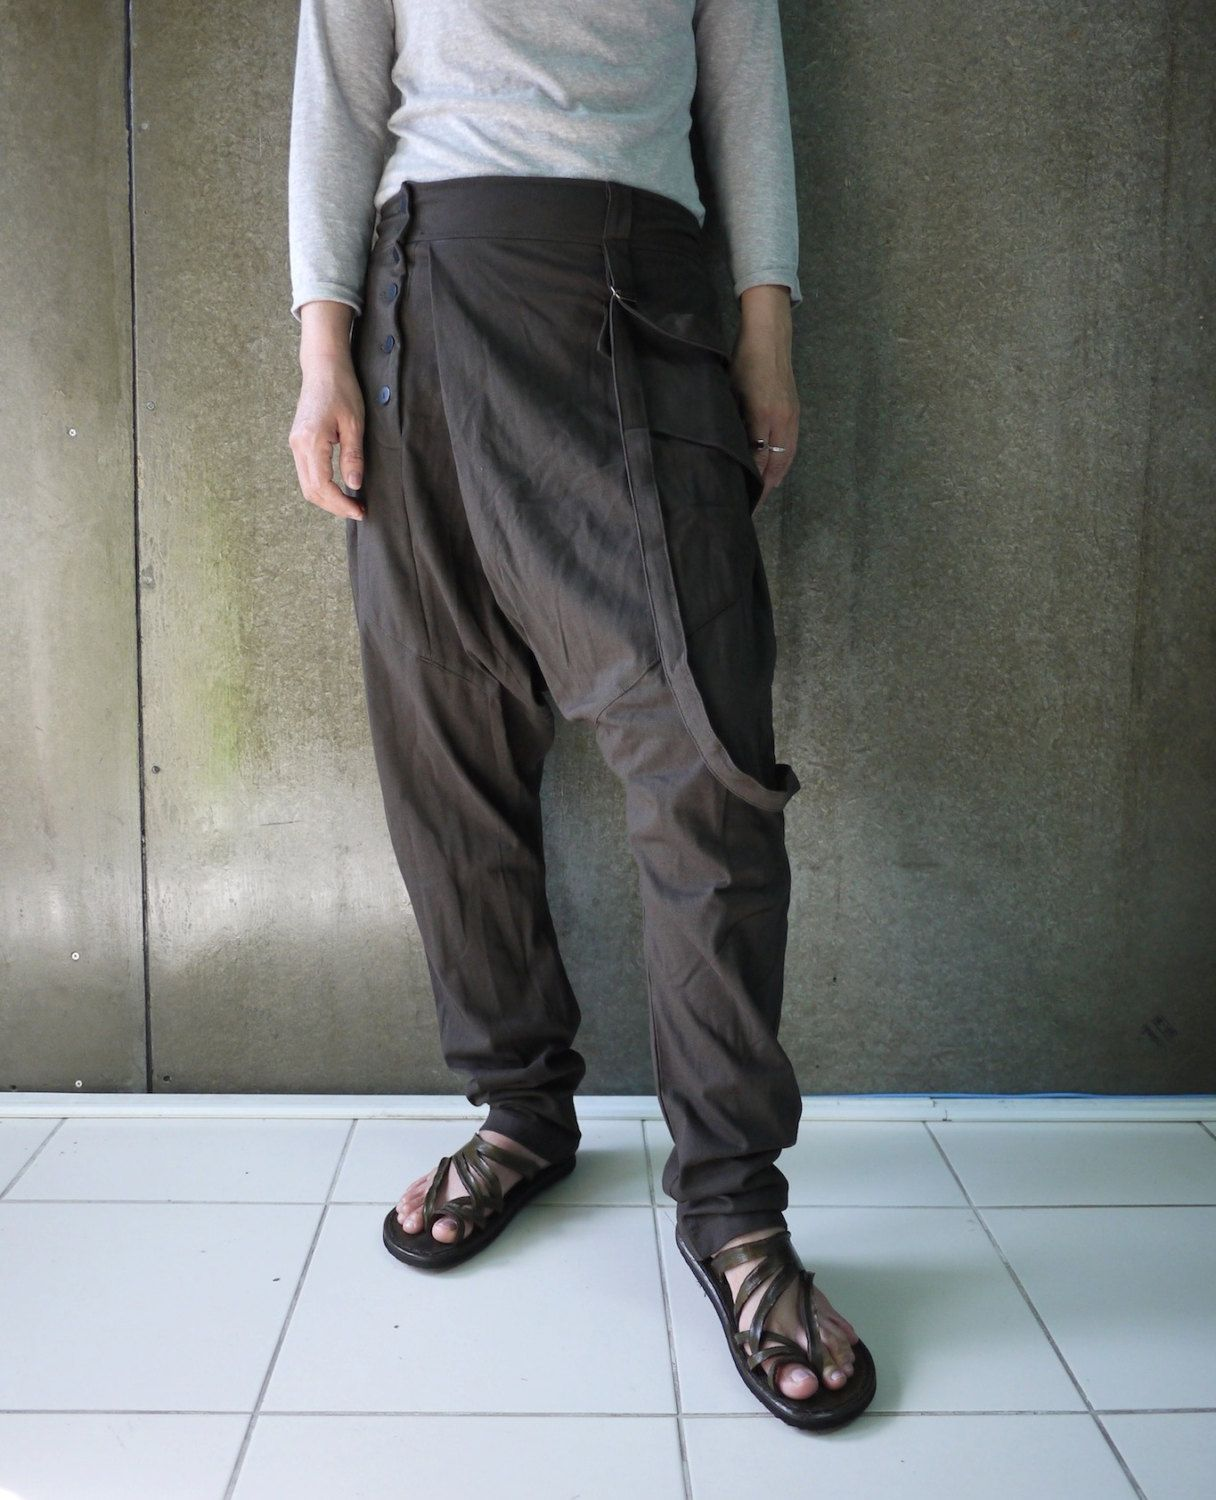 Gray linen Pants for man woman, Harem gray pants, Light Gray Linen trousers, Unisex Yoga Pants, Drop crotch Gray Pants, Festival clothing